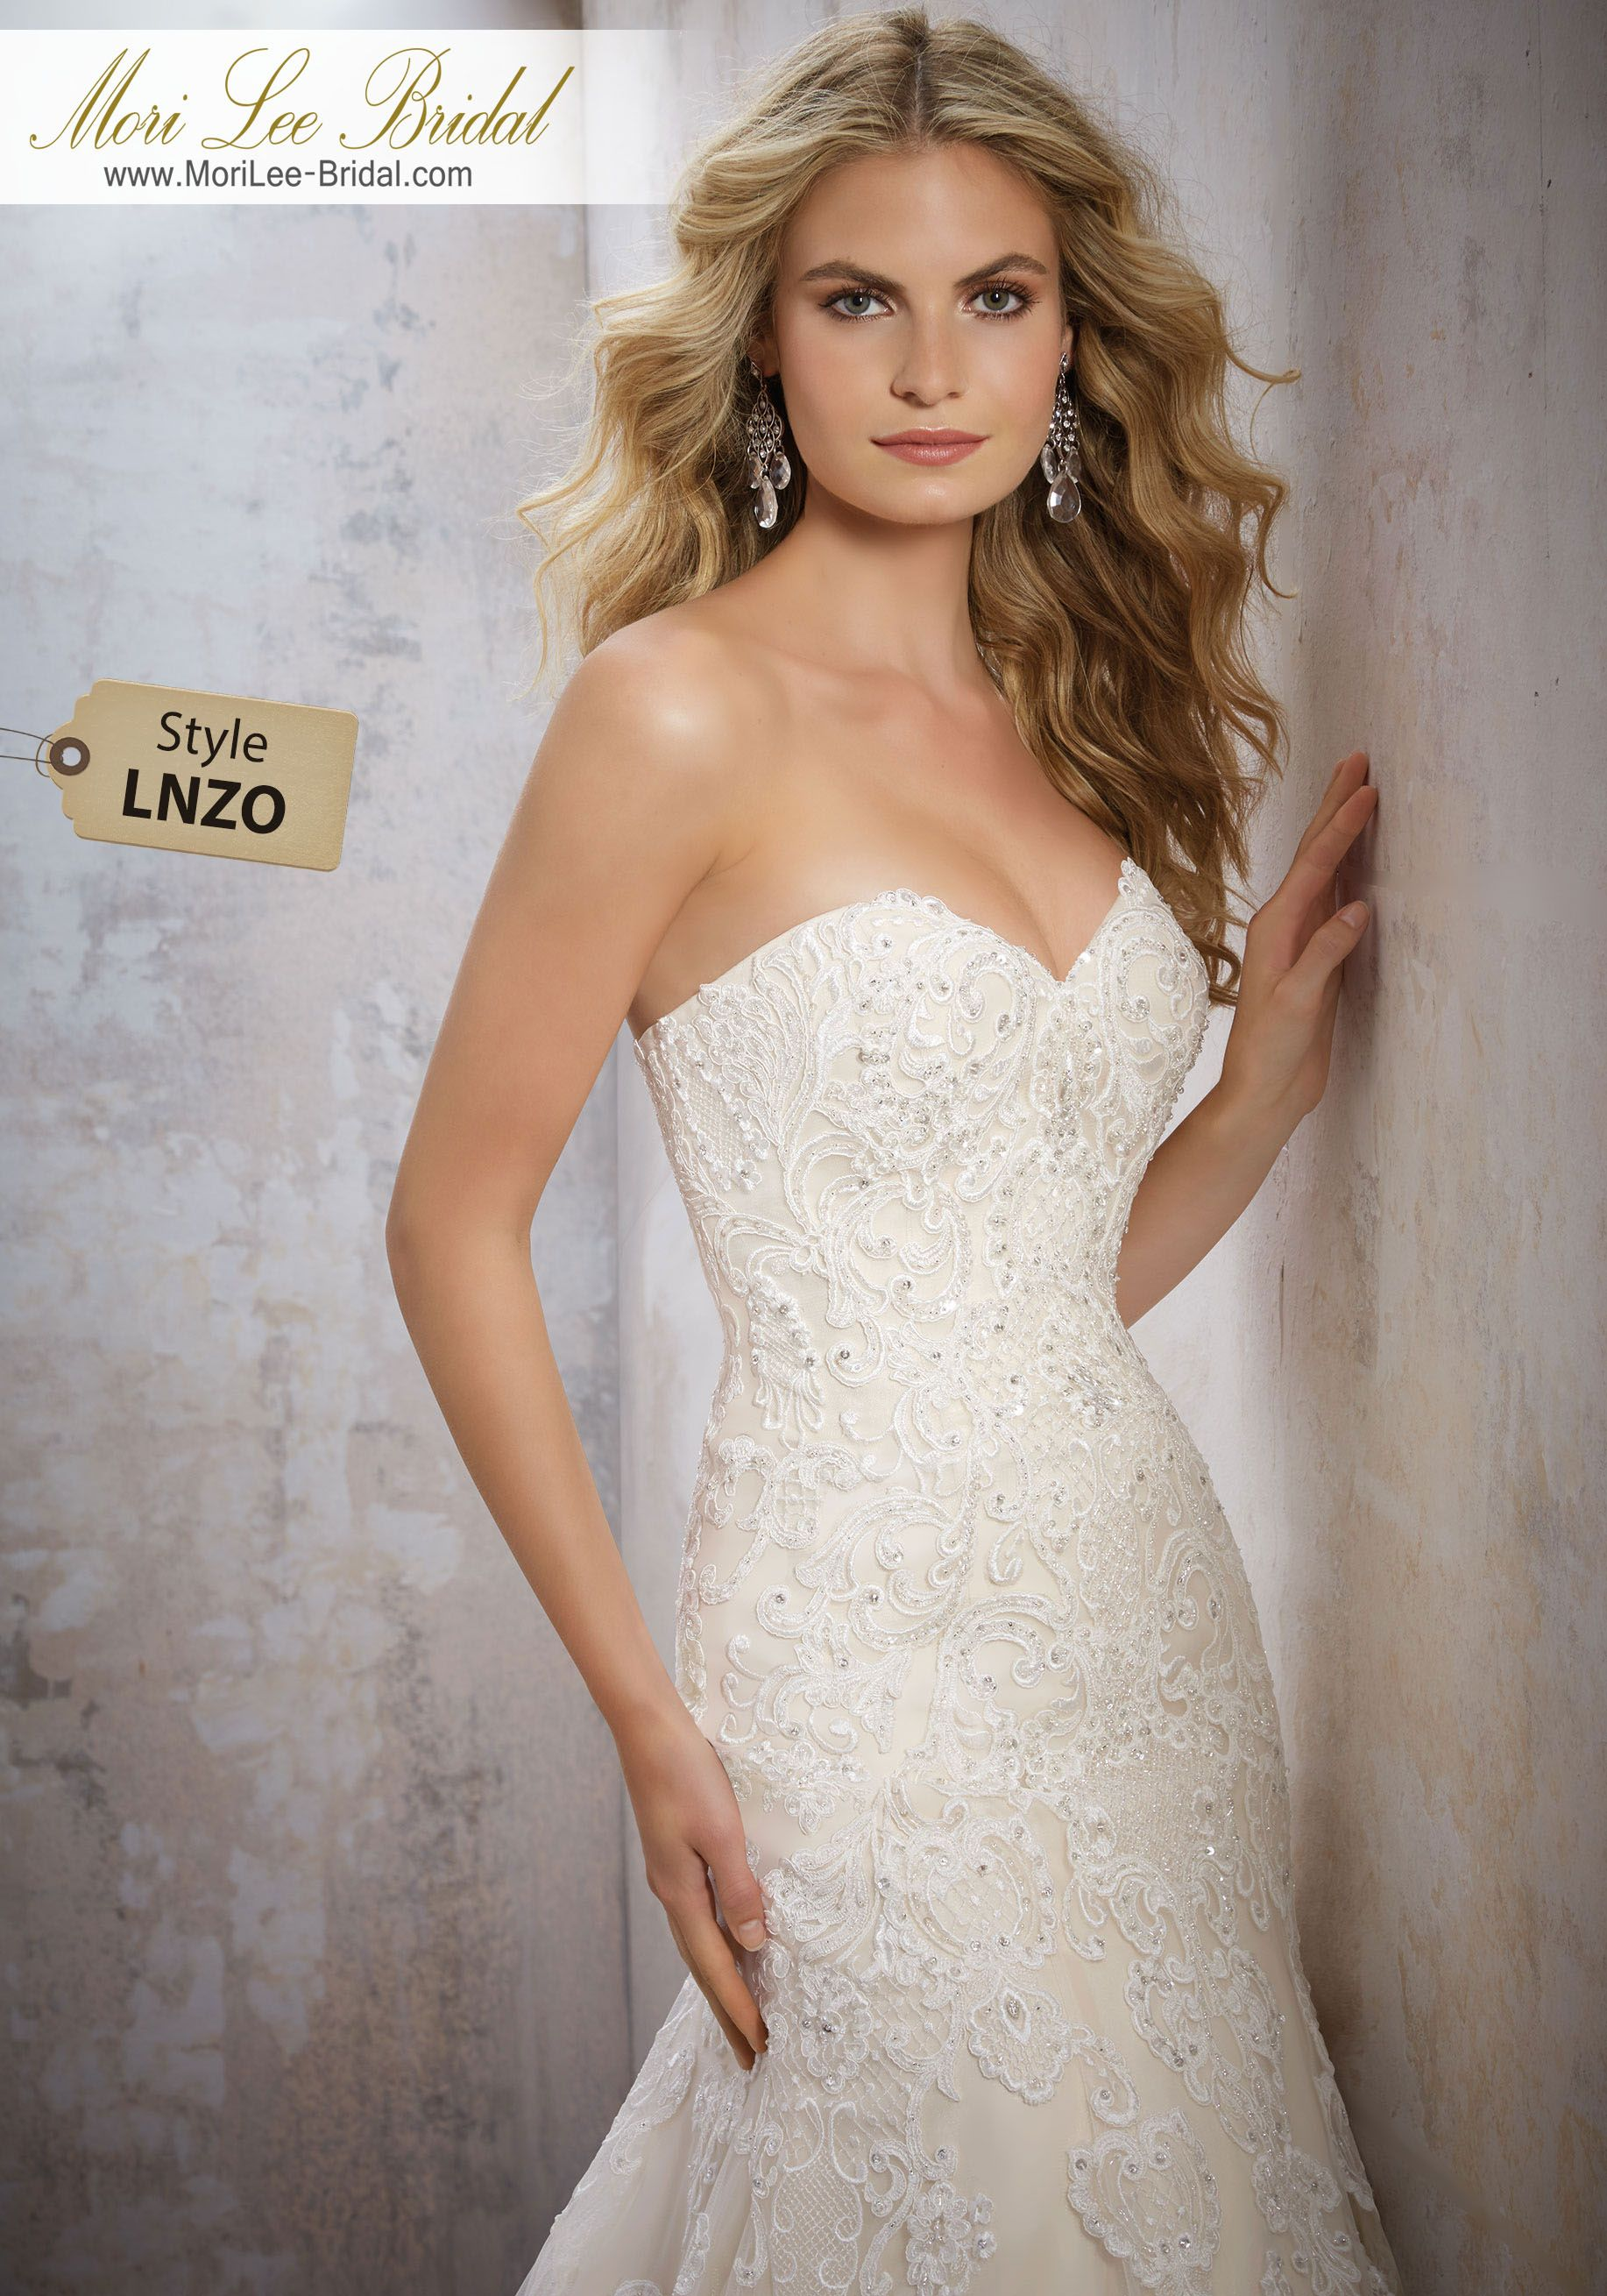 Dress style lnzo strapless bridal gown featuring a romantic